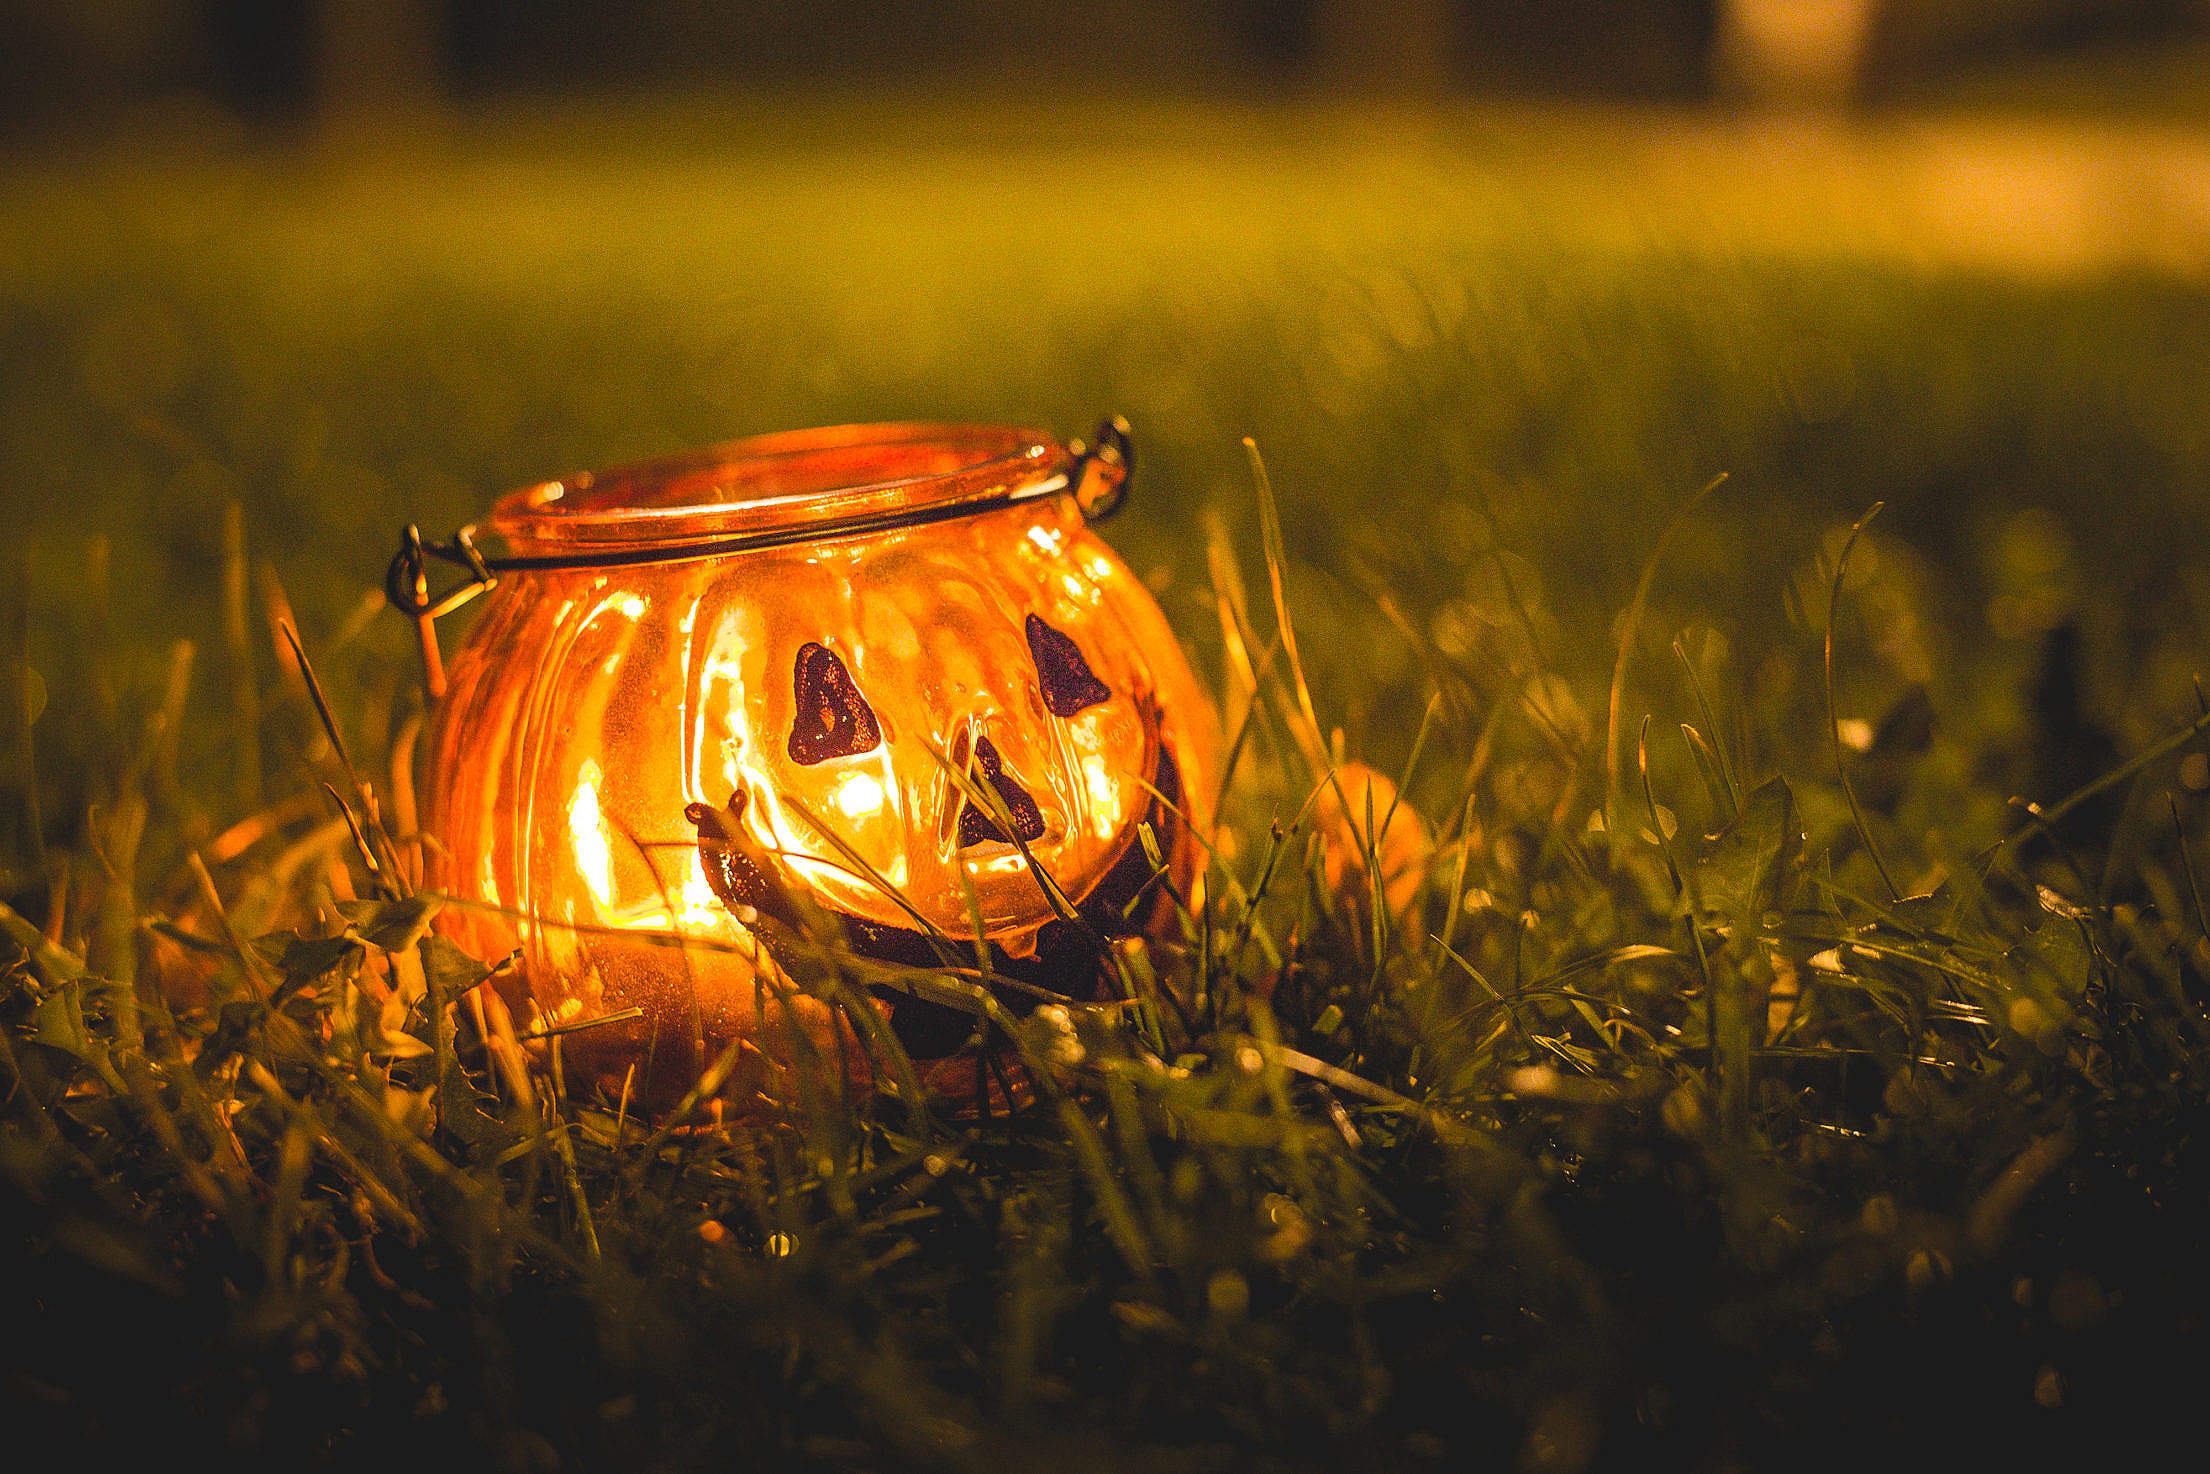 Halloween Candle Holder in Evening Grass Free Stock Photo